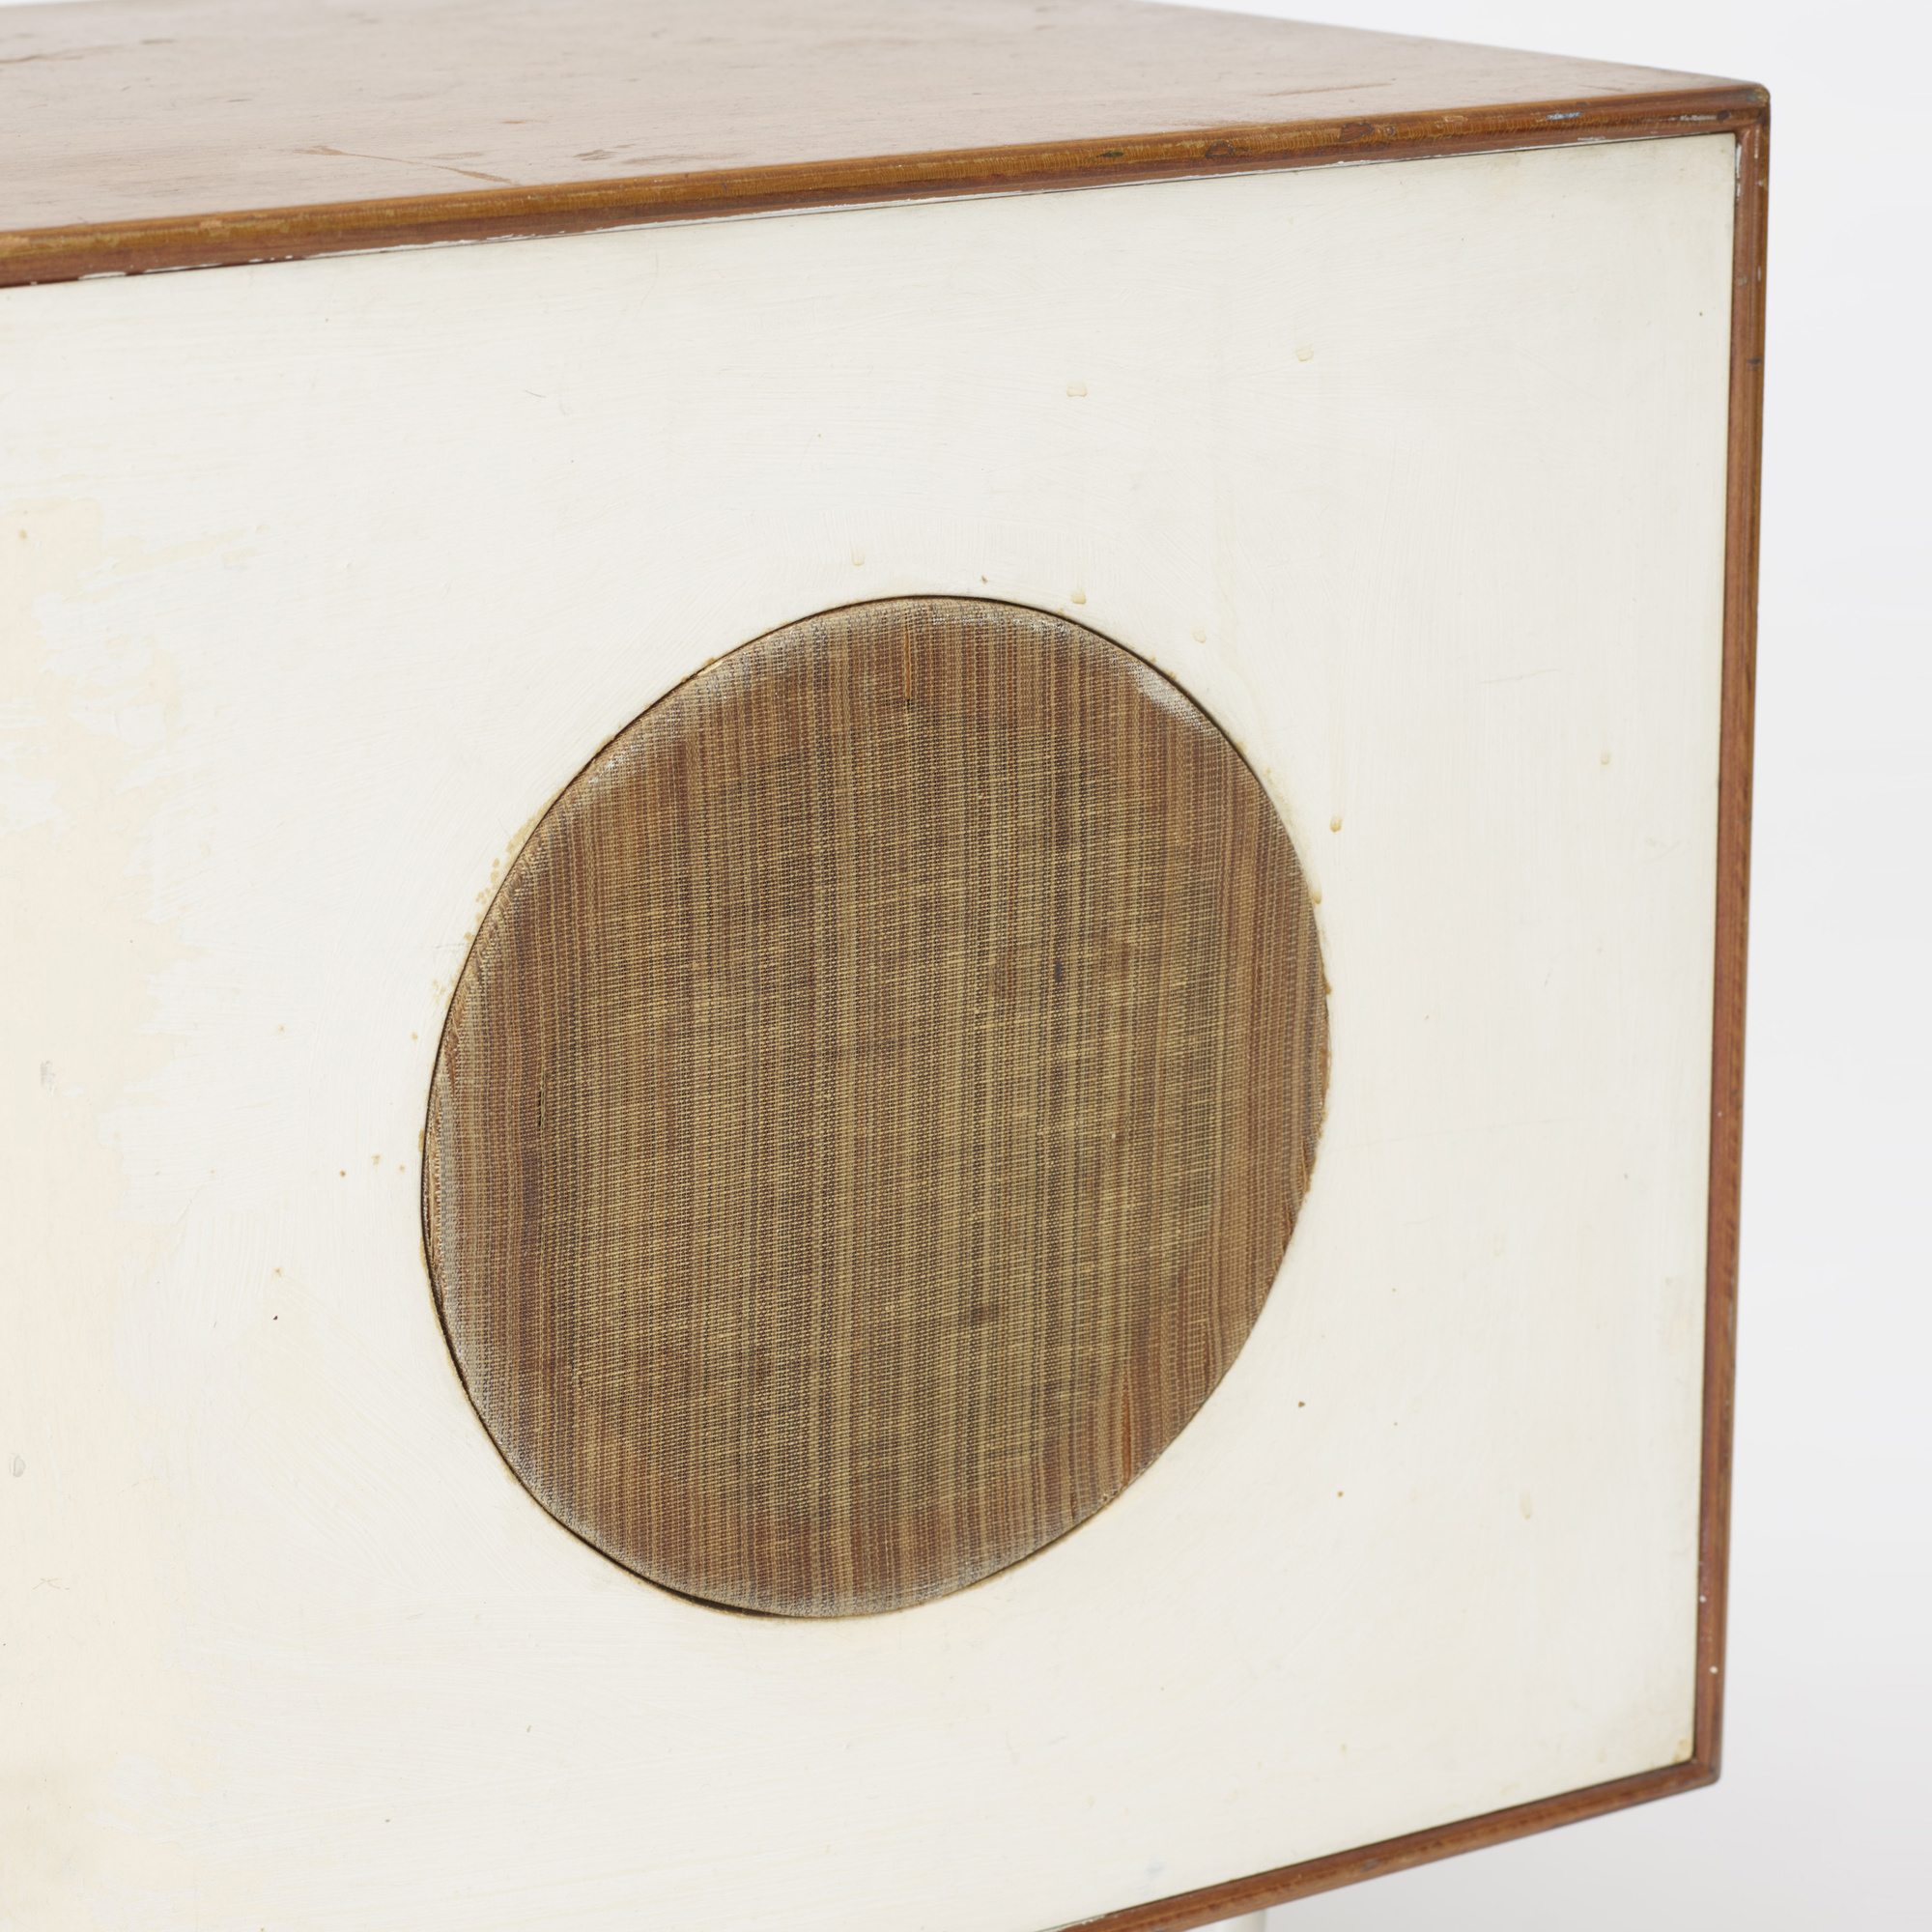 ... 281: Charles And Ray Eames / Experimental Speaker Cabinet (2 Of 2)